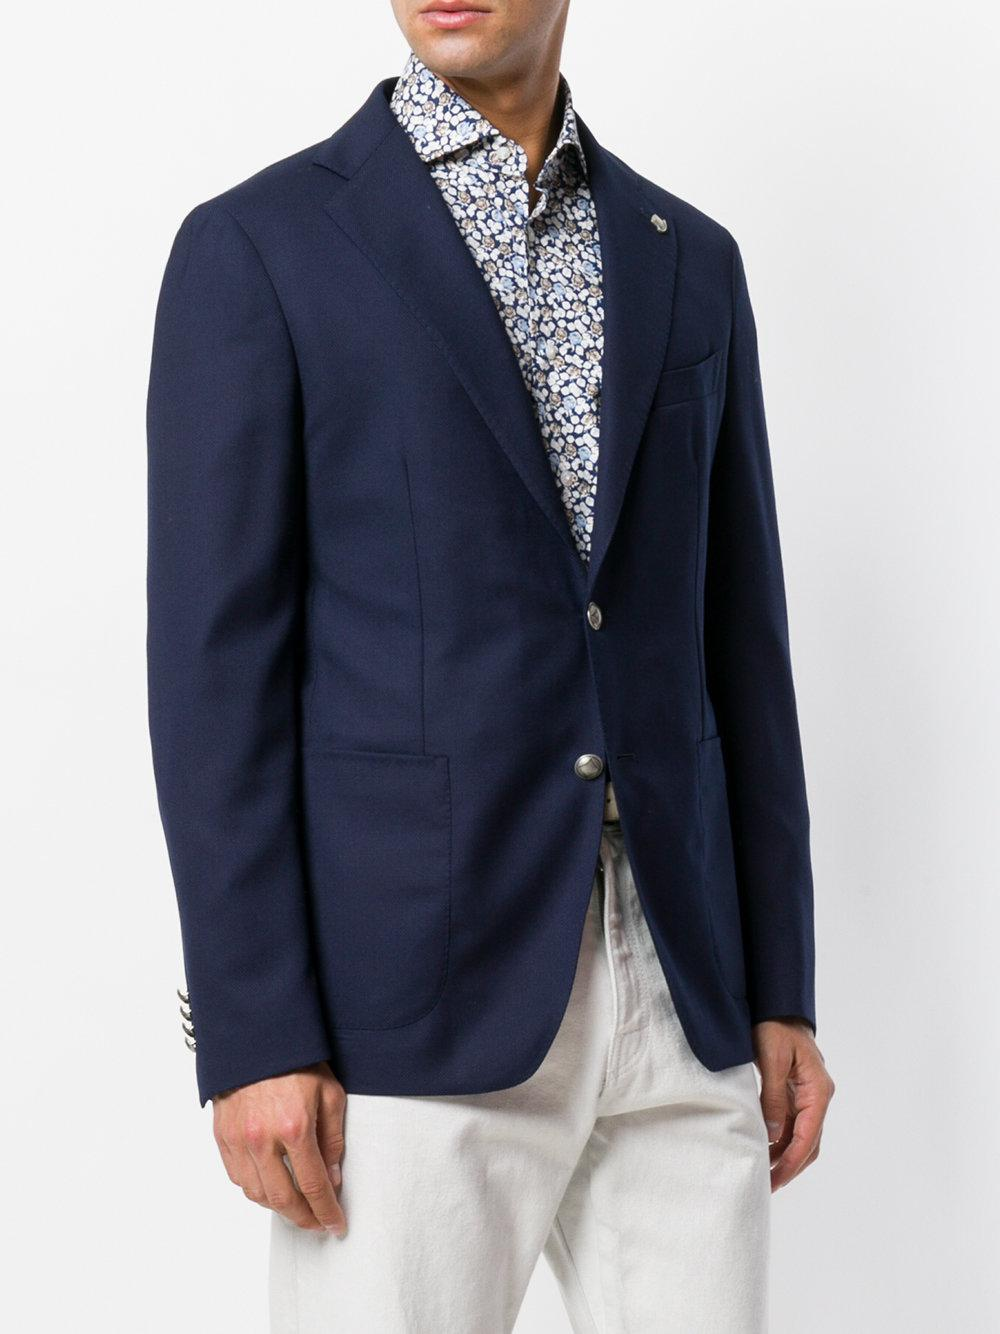 Tagliatore Wool Fitted Casual Suit Jacket in Blue for Men